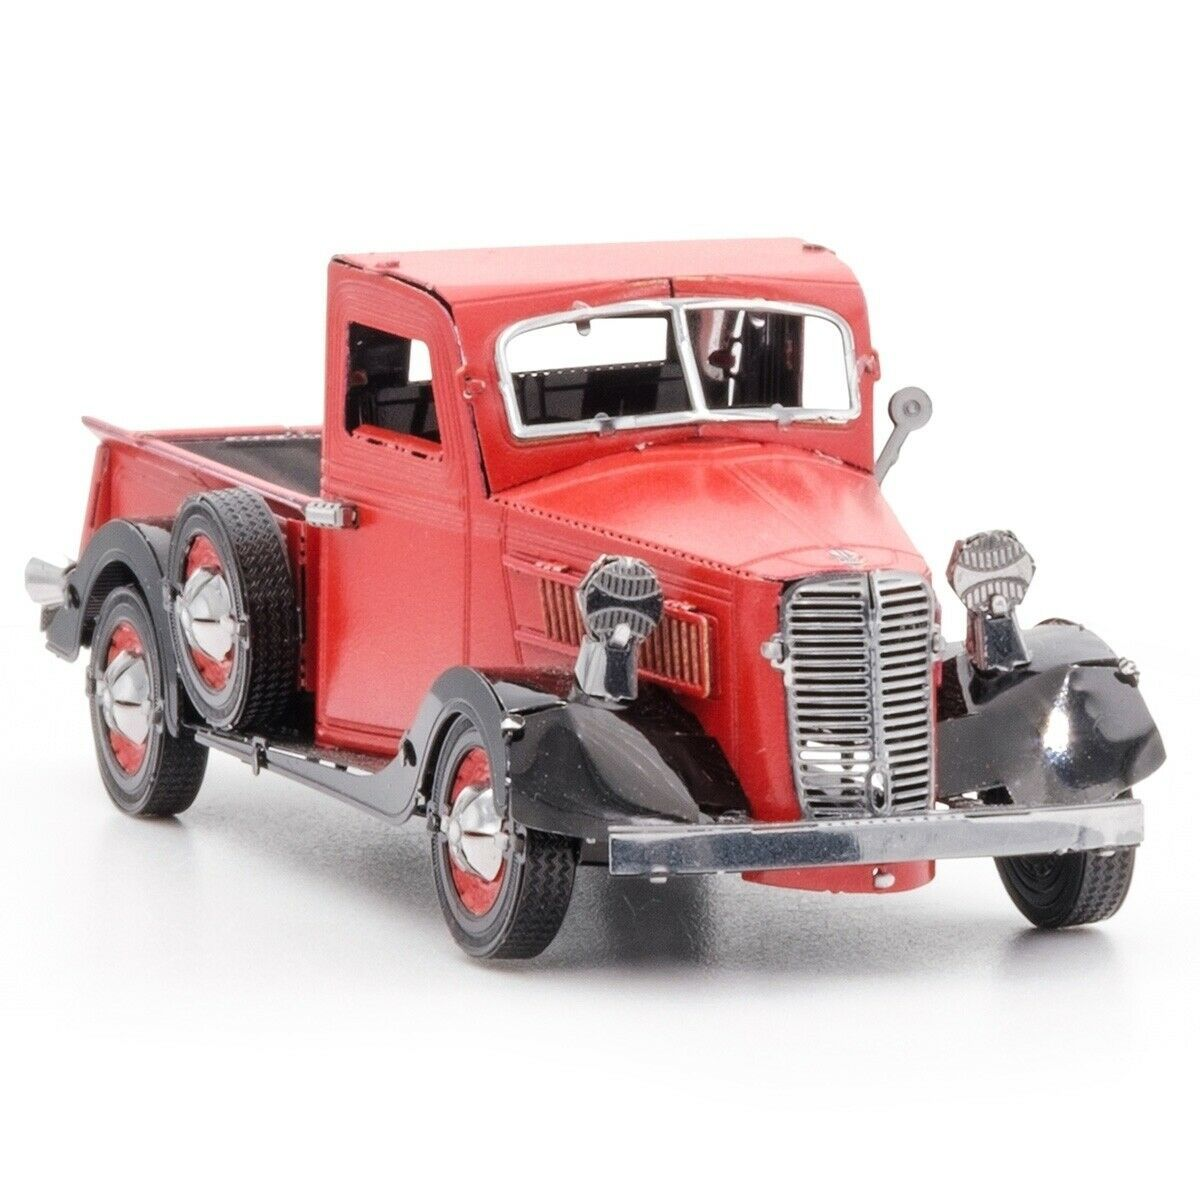 Details About Fascinations Metal Earth 1937 Ford Pickup Automobile 3d Steel Model Kit Mms199 Ford Pickup Metal Earth Ford Pickup Trucks